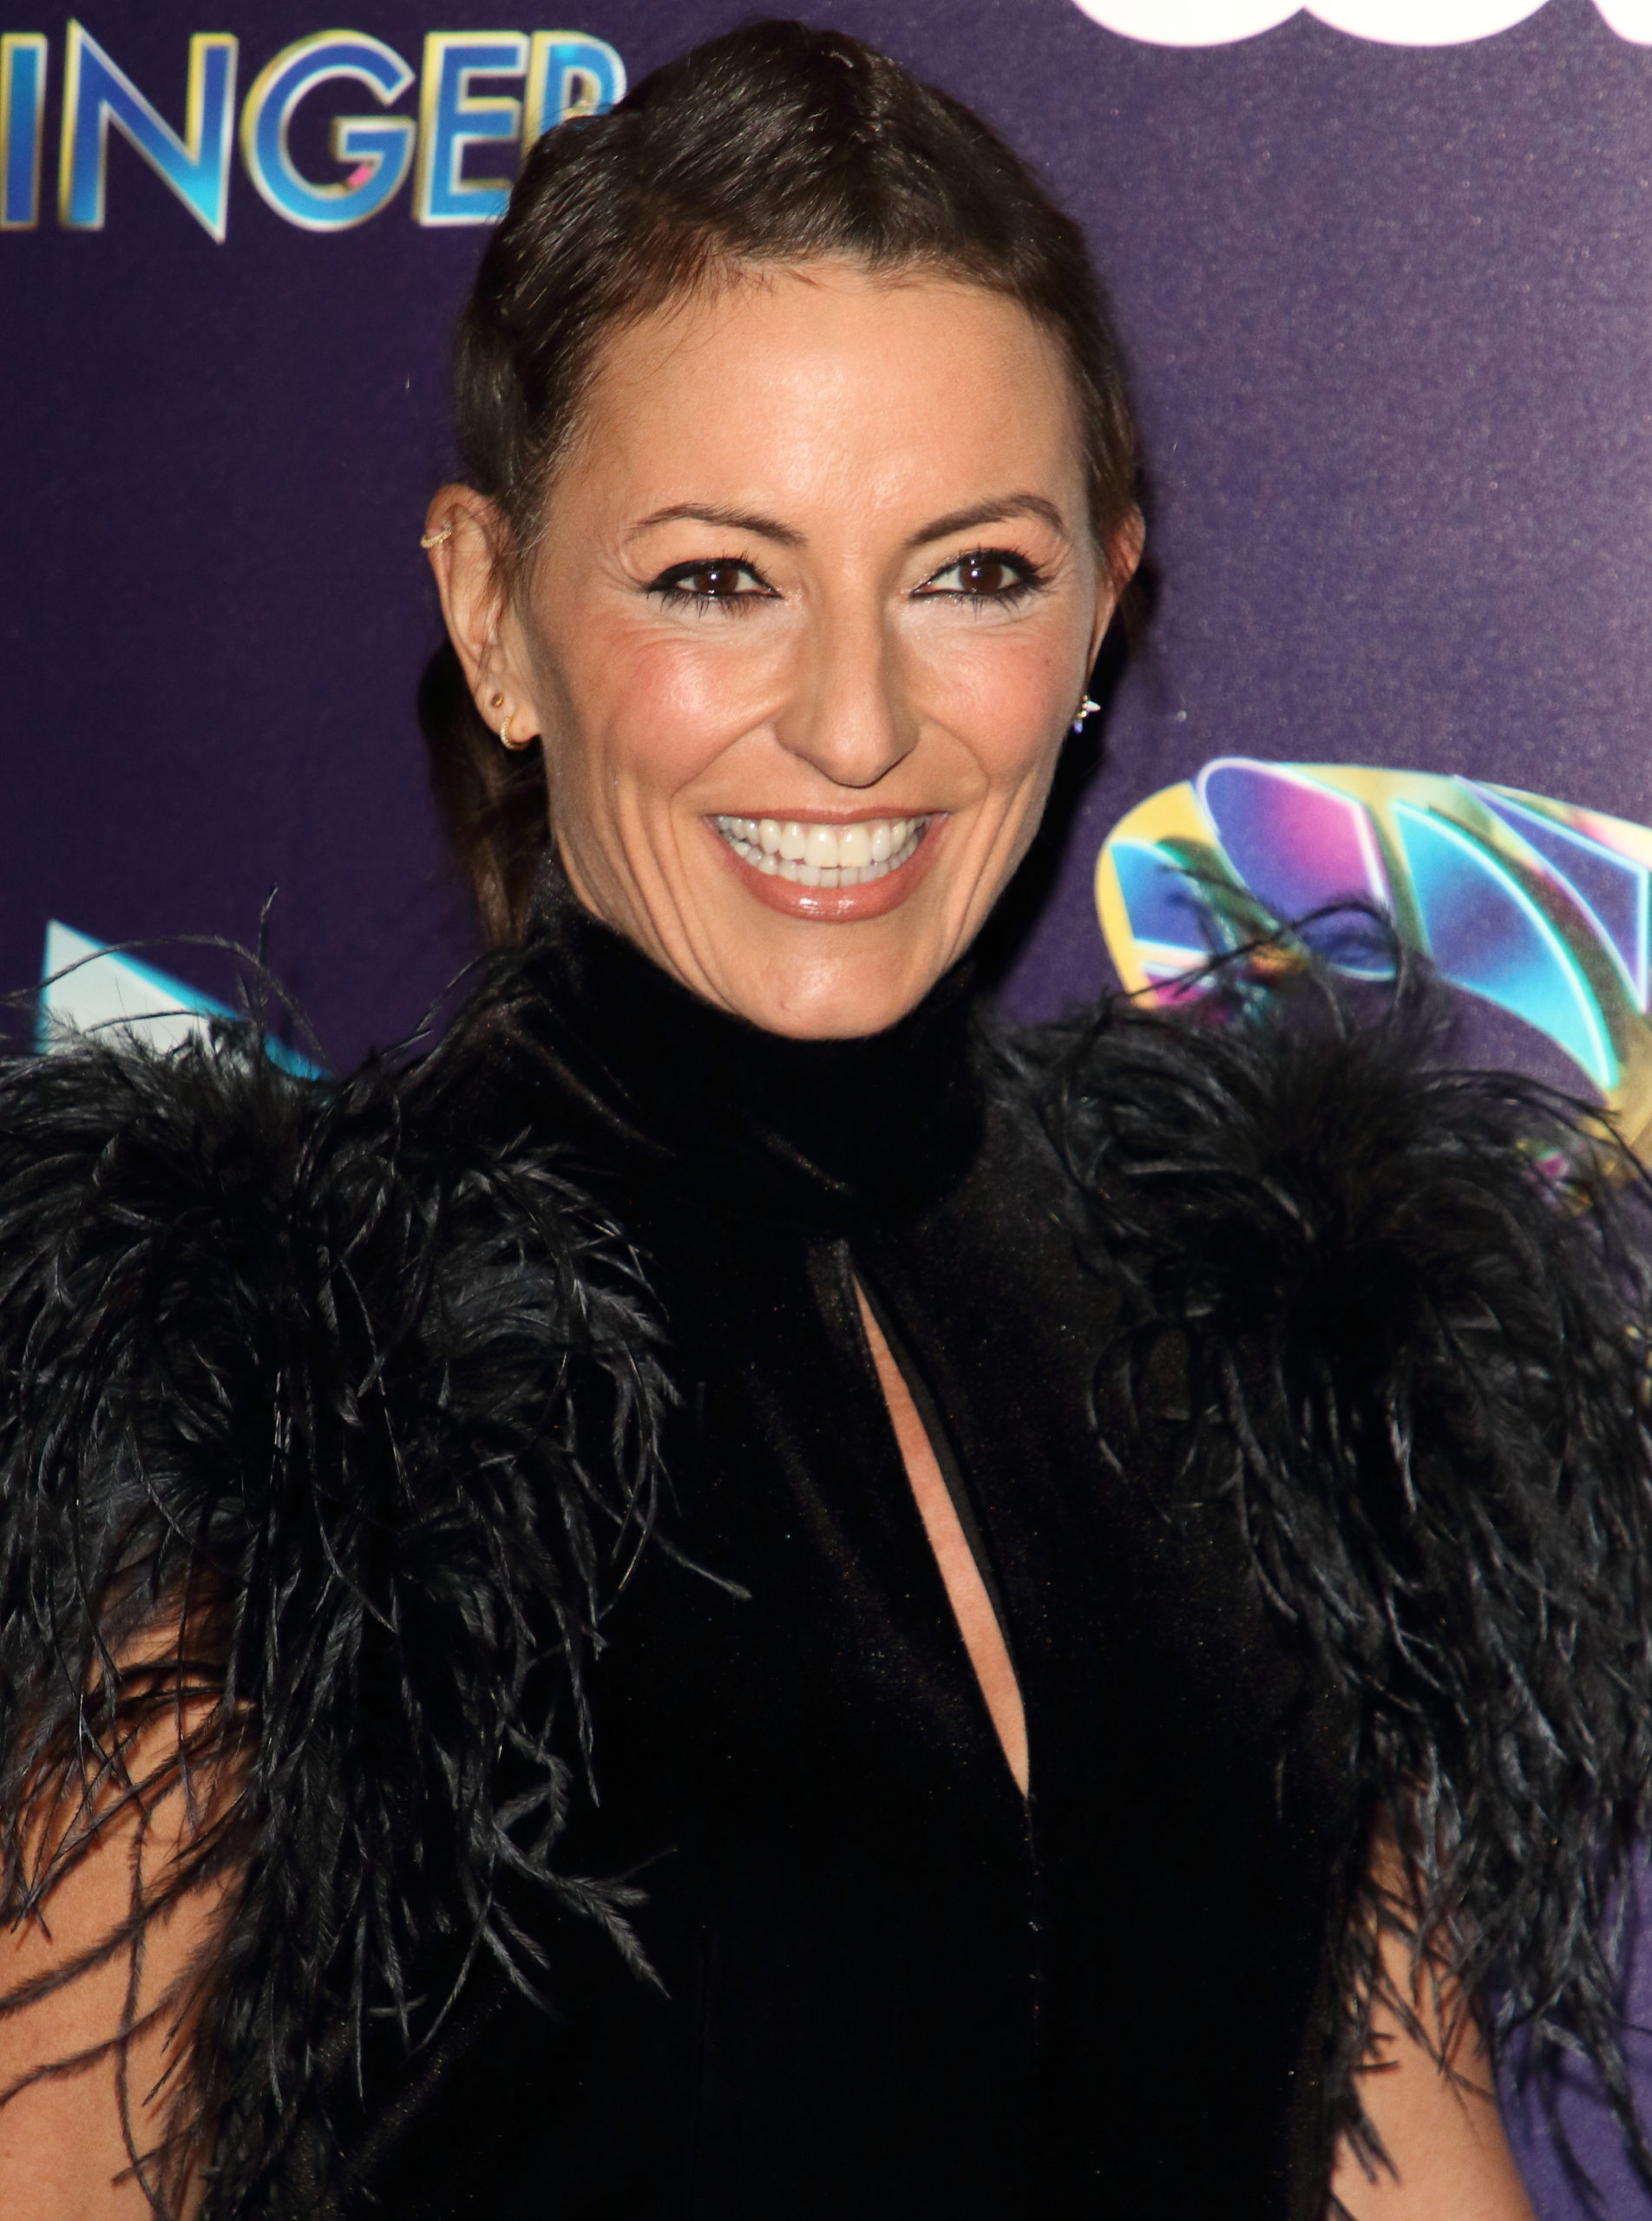 Davina McCall responded to Brian Dowling Big Brother claims